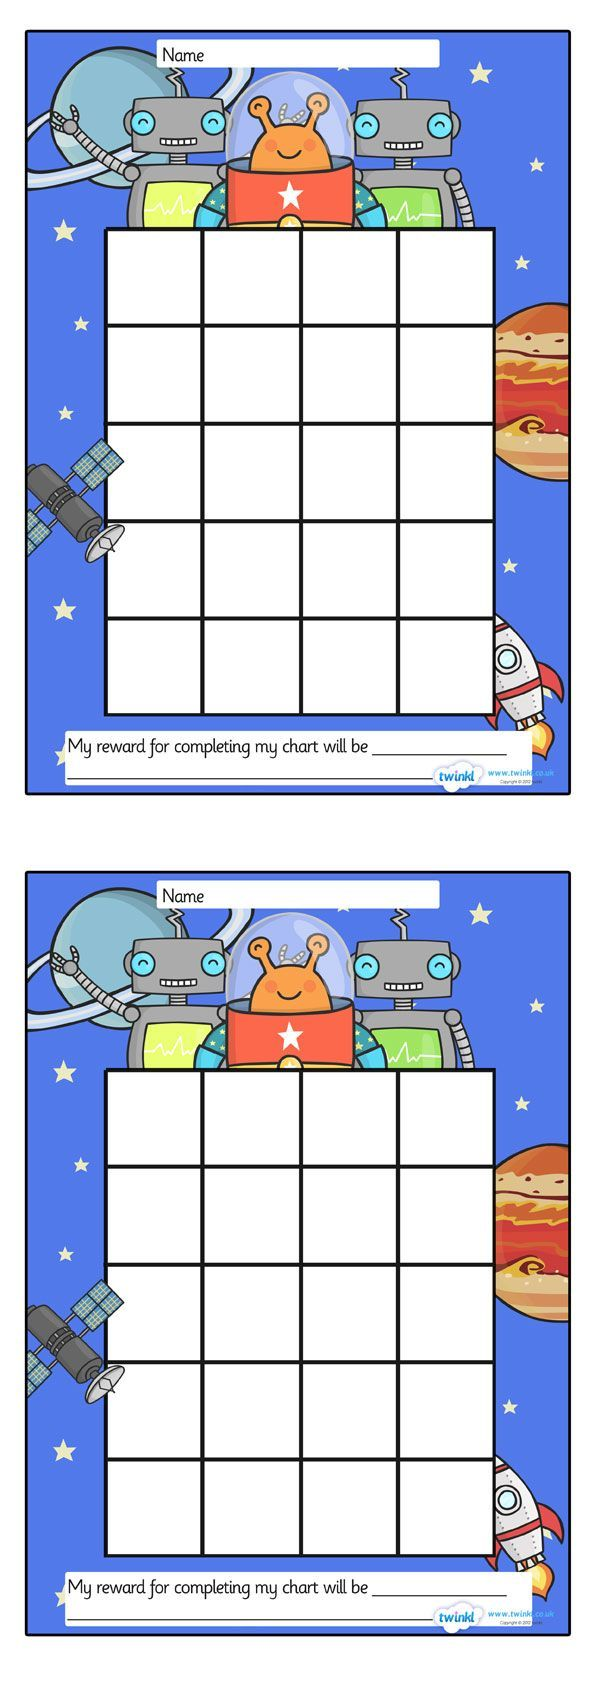 Twinkl Resources U003eu003e Space Sticker/Stamp Reward Chart U003eu003e Classroom Printables  For Pre  Free Printable Reward Charts For Teachers